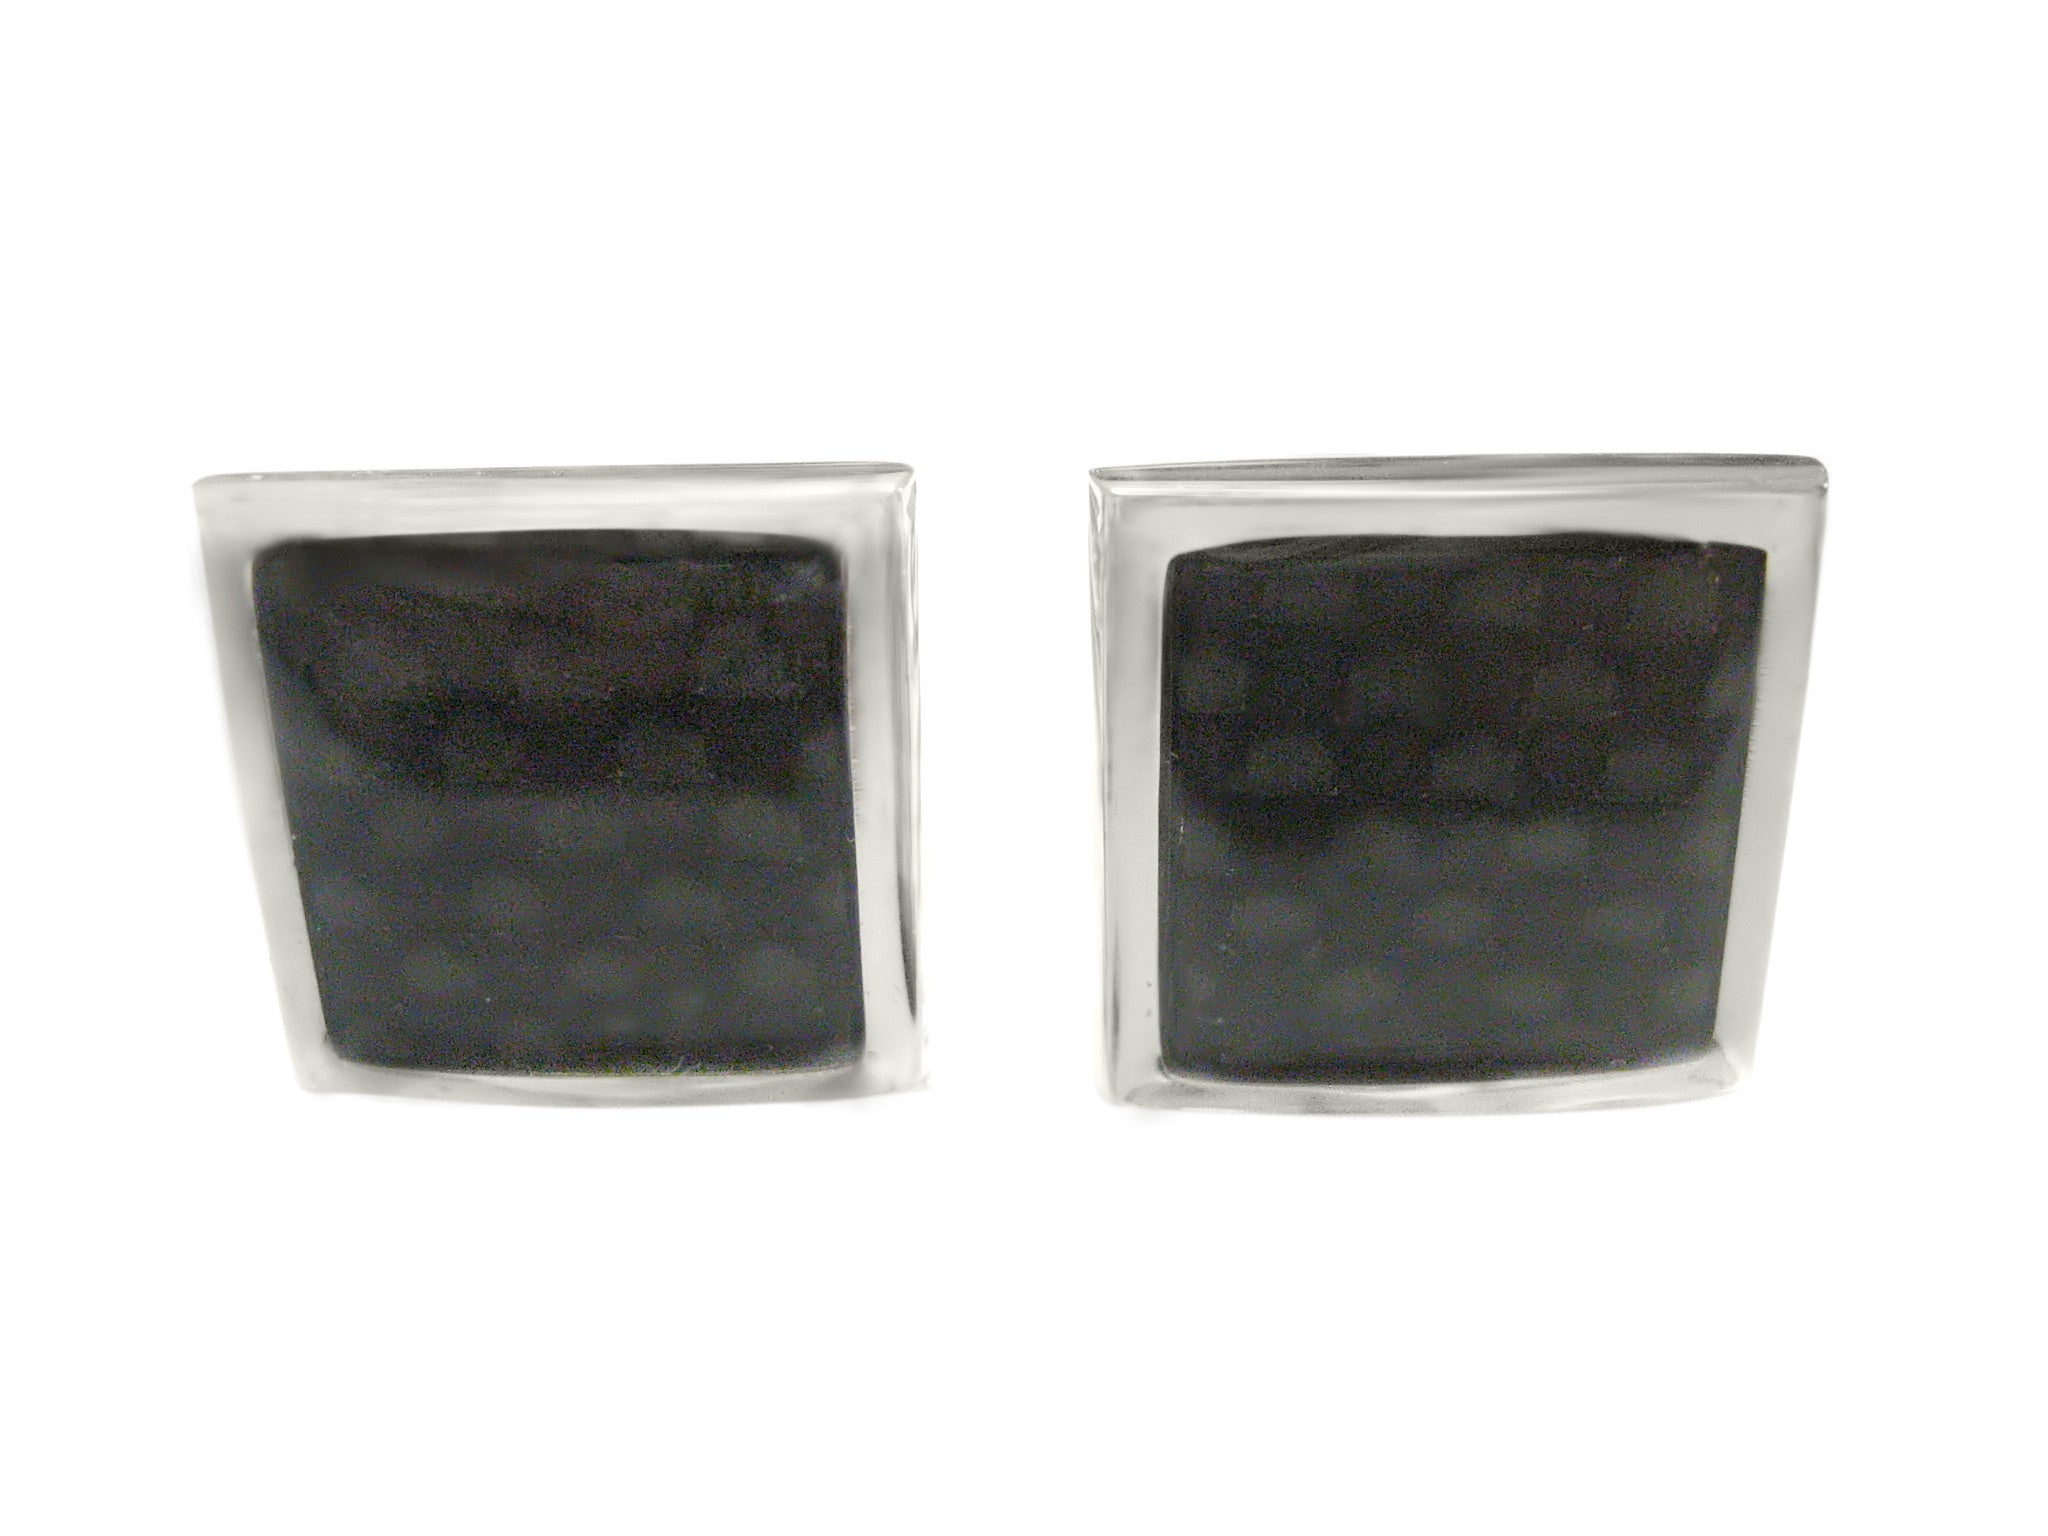 Black Carbon Fiber Design Cufflinks Cufflinks